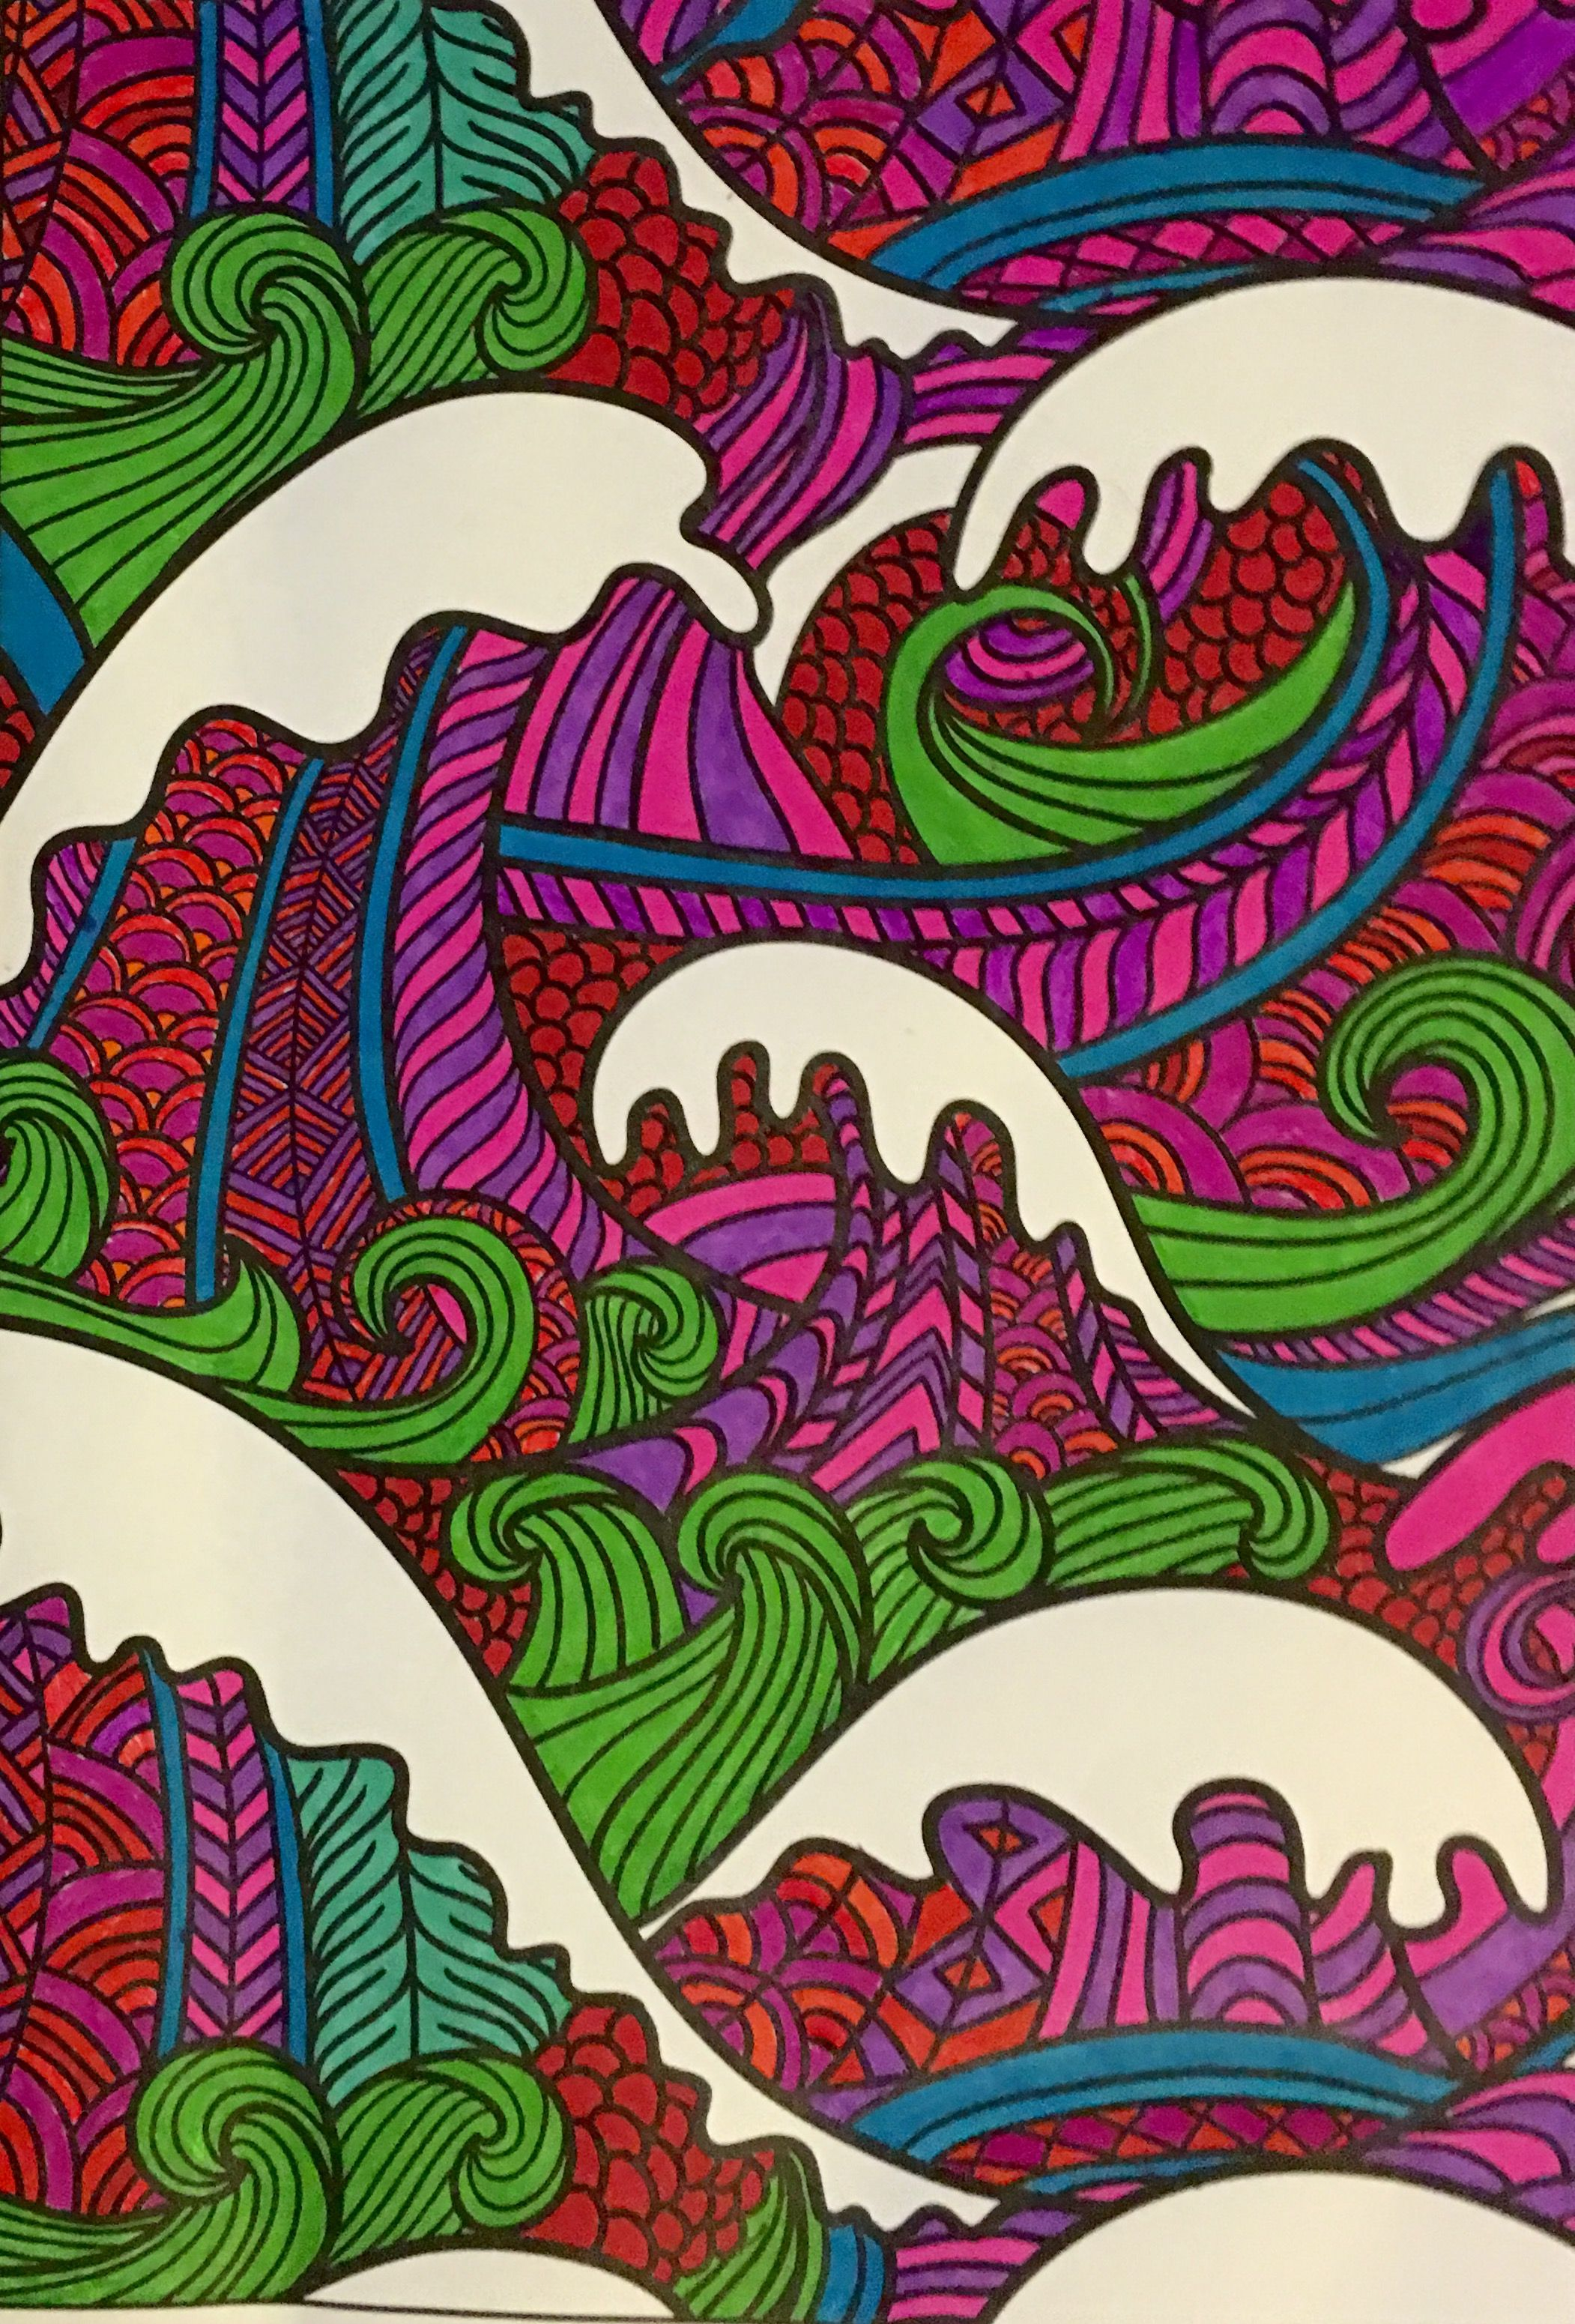 From Mandala Coloring Book Colored With Sharpie Markers By Judy Soto